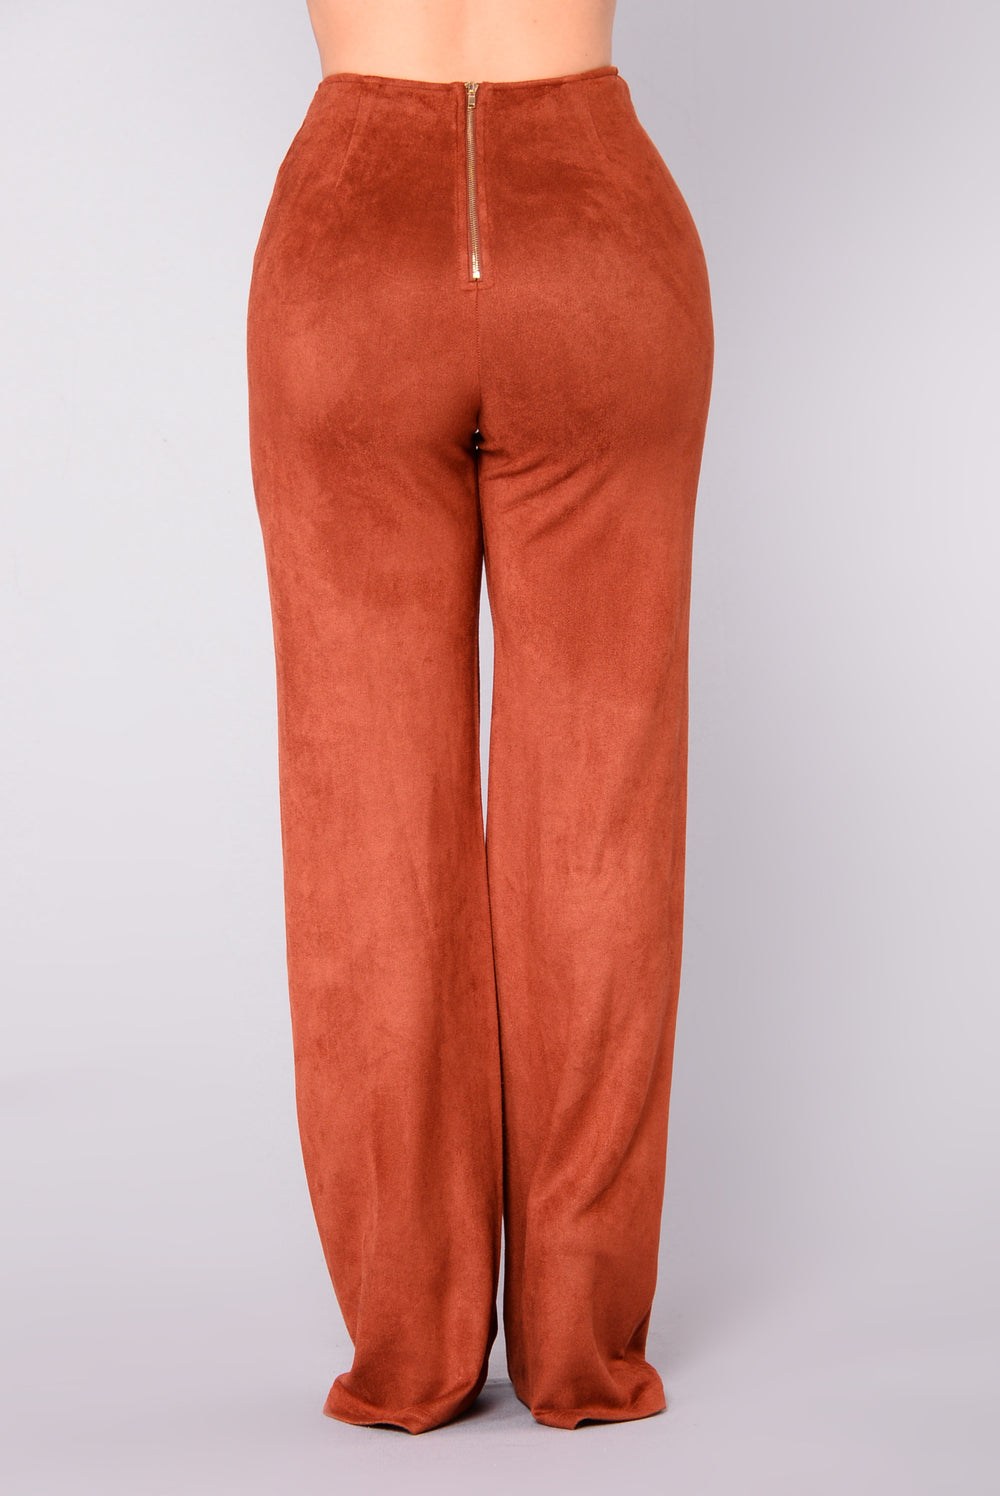 Get In Formation Suede Pants - Rust